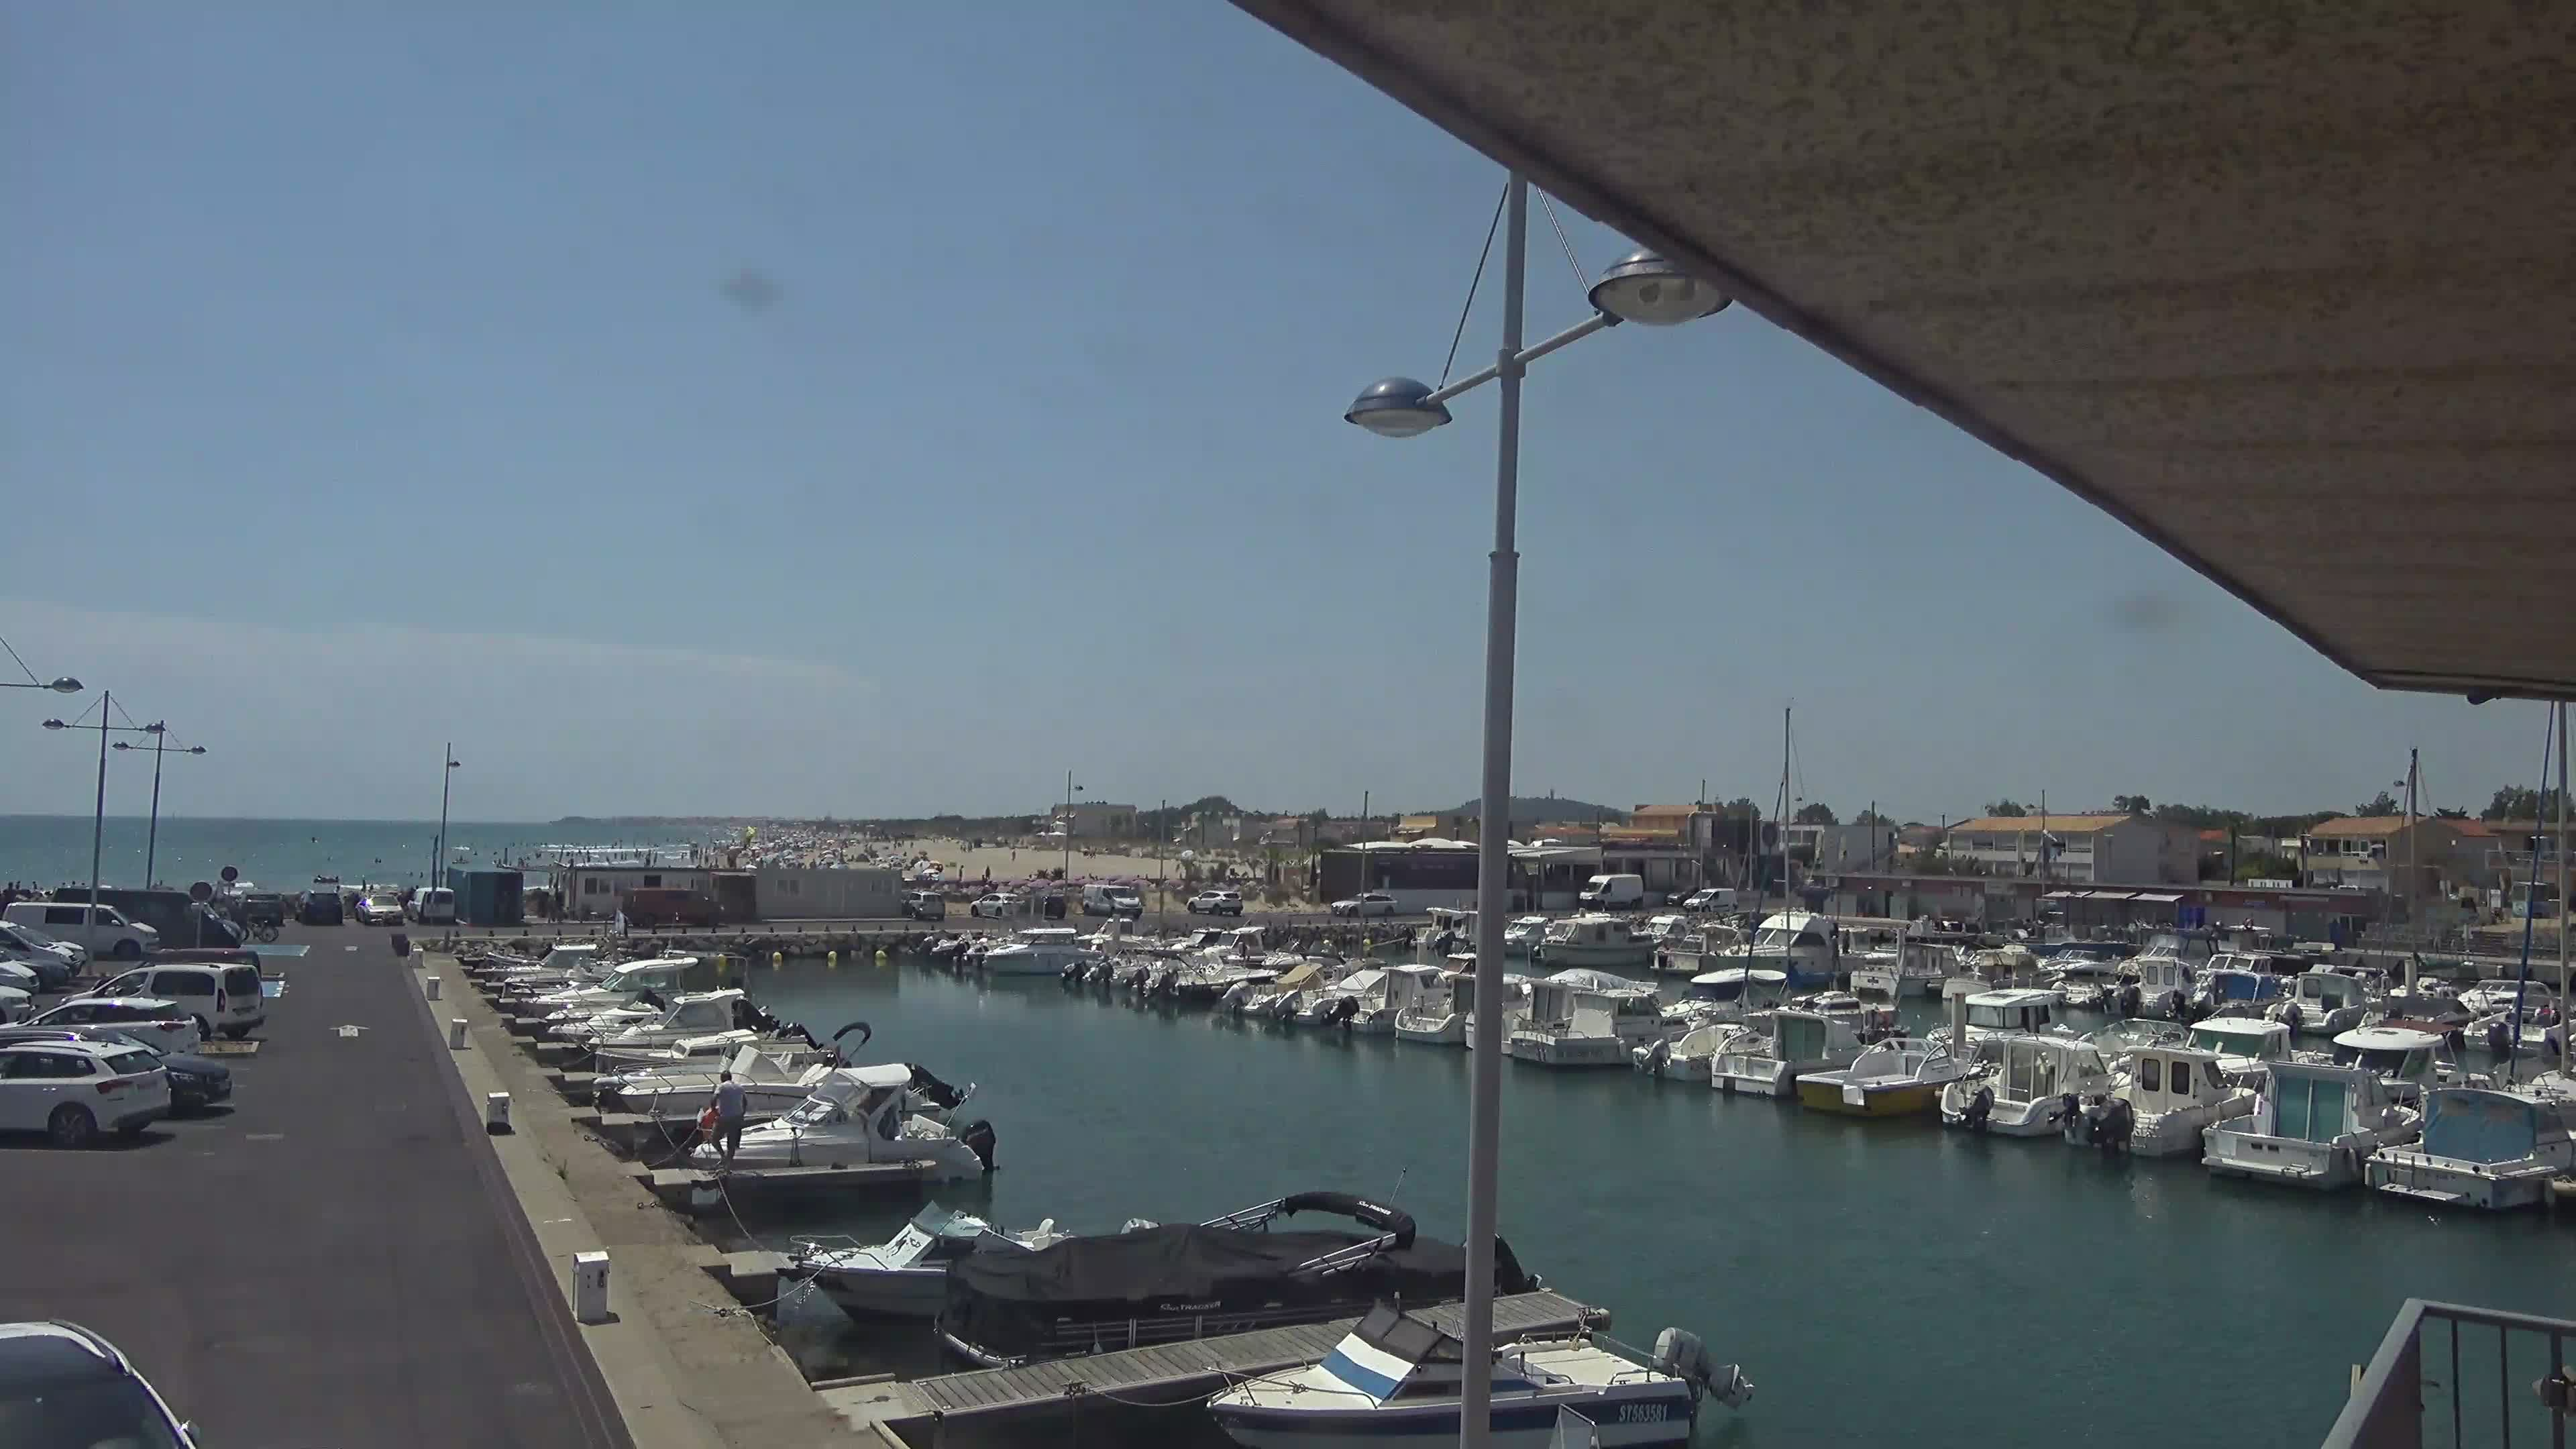 Webcam du port de plaisance de Marseillan plage